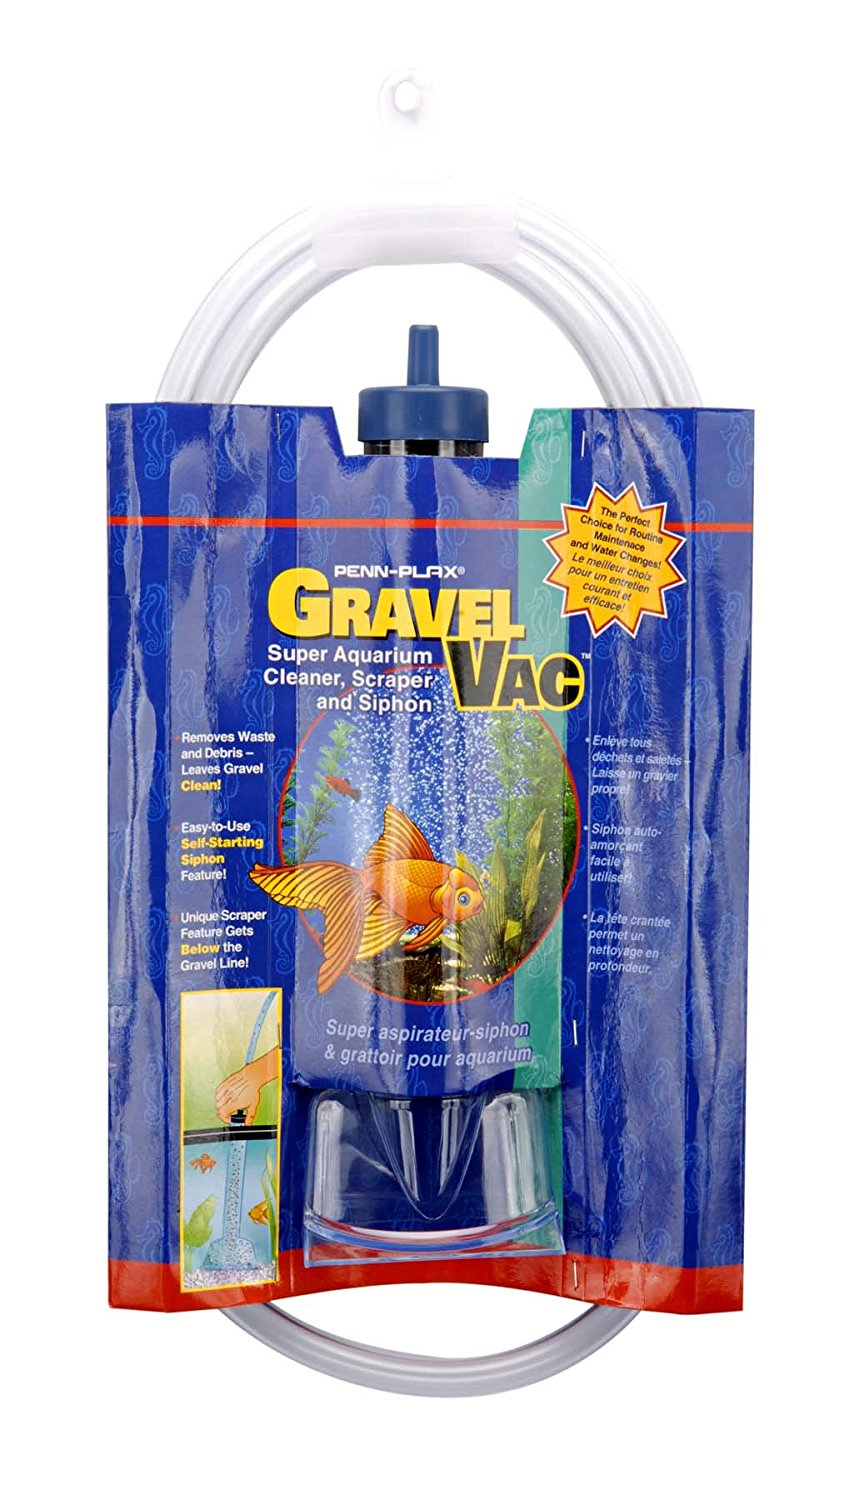 Aquarium Gravel Vac, 9-Inch, This gravel vac has a self starting siphon, great for all routine maintenance... by